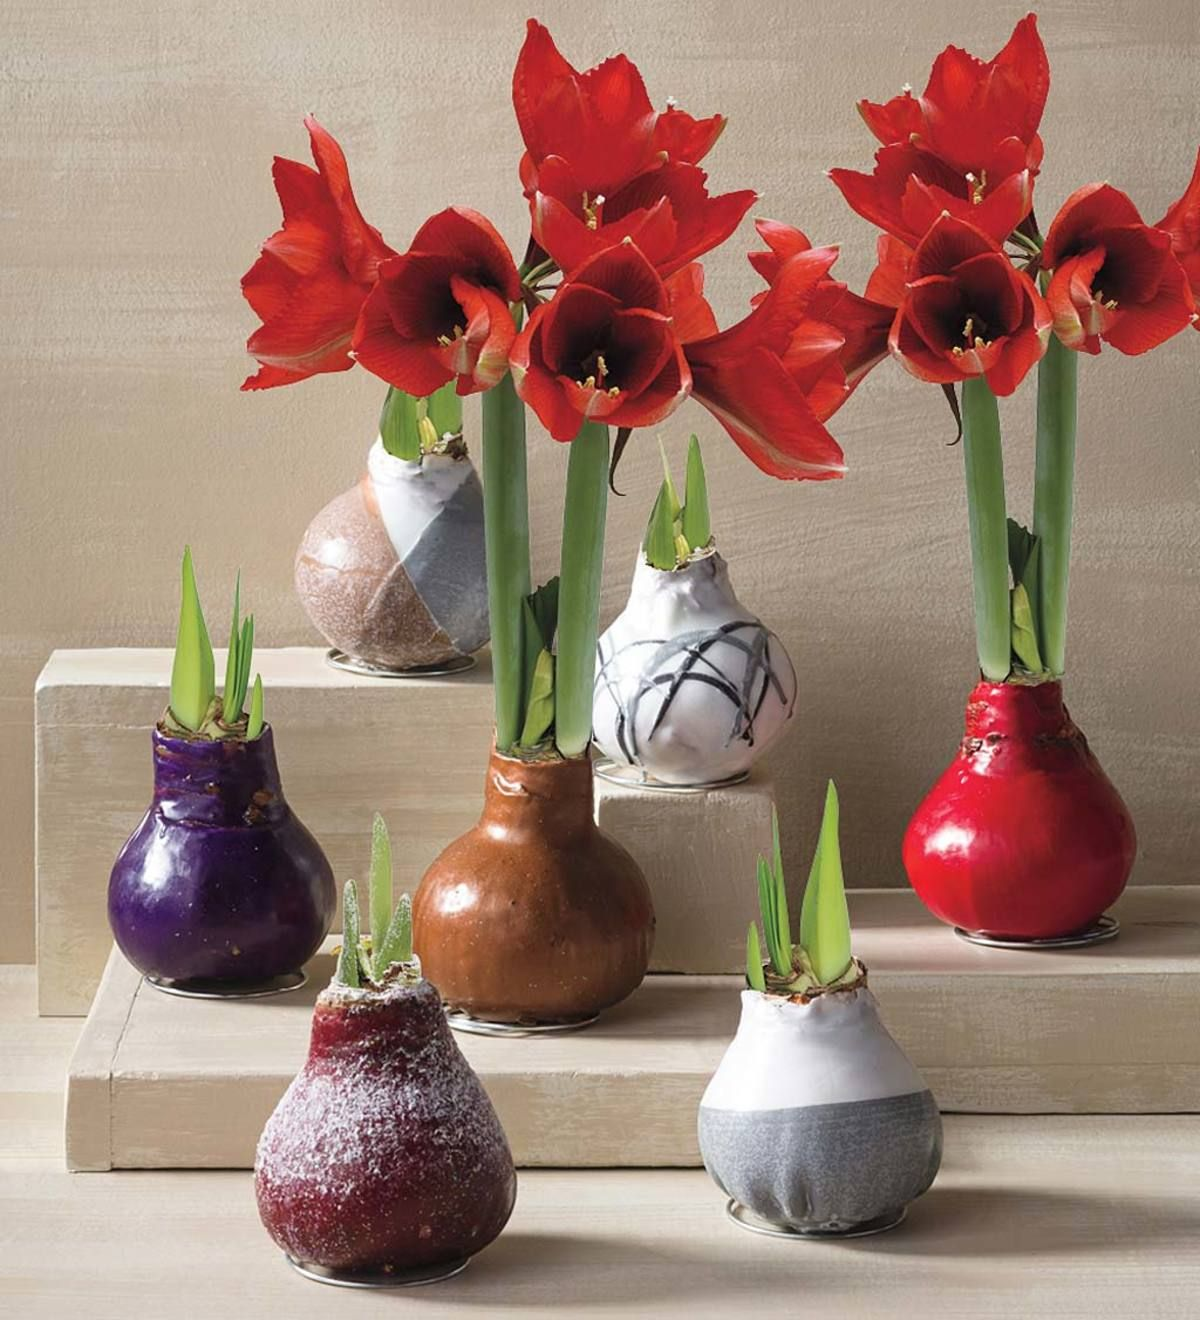 No Water Wax Dipped Amaryllis Bulb Black With Snow Vivaterra In 2020 Amaryllis Bulbs Flower Bulb Gifts Bulb Flowers